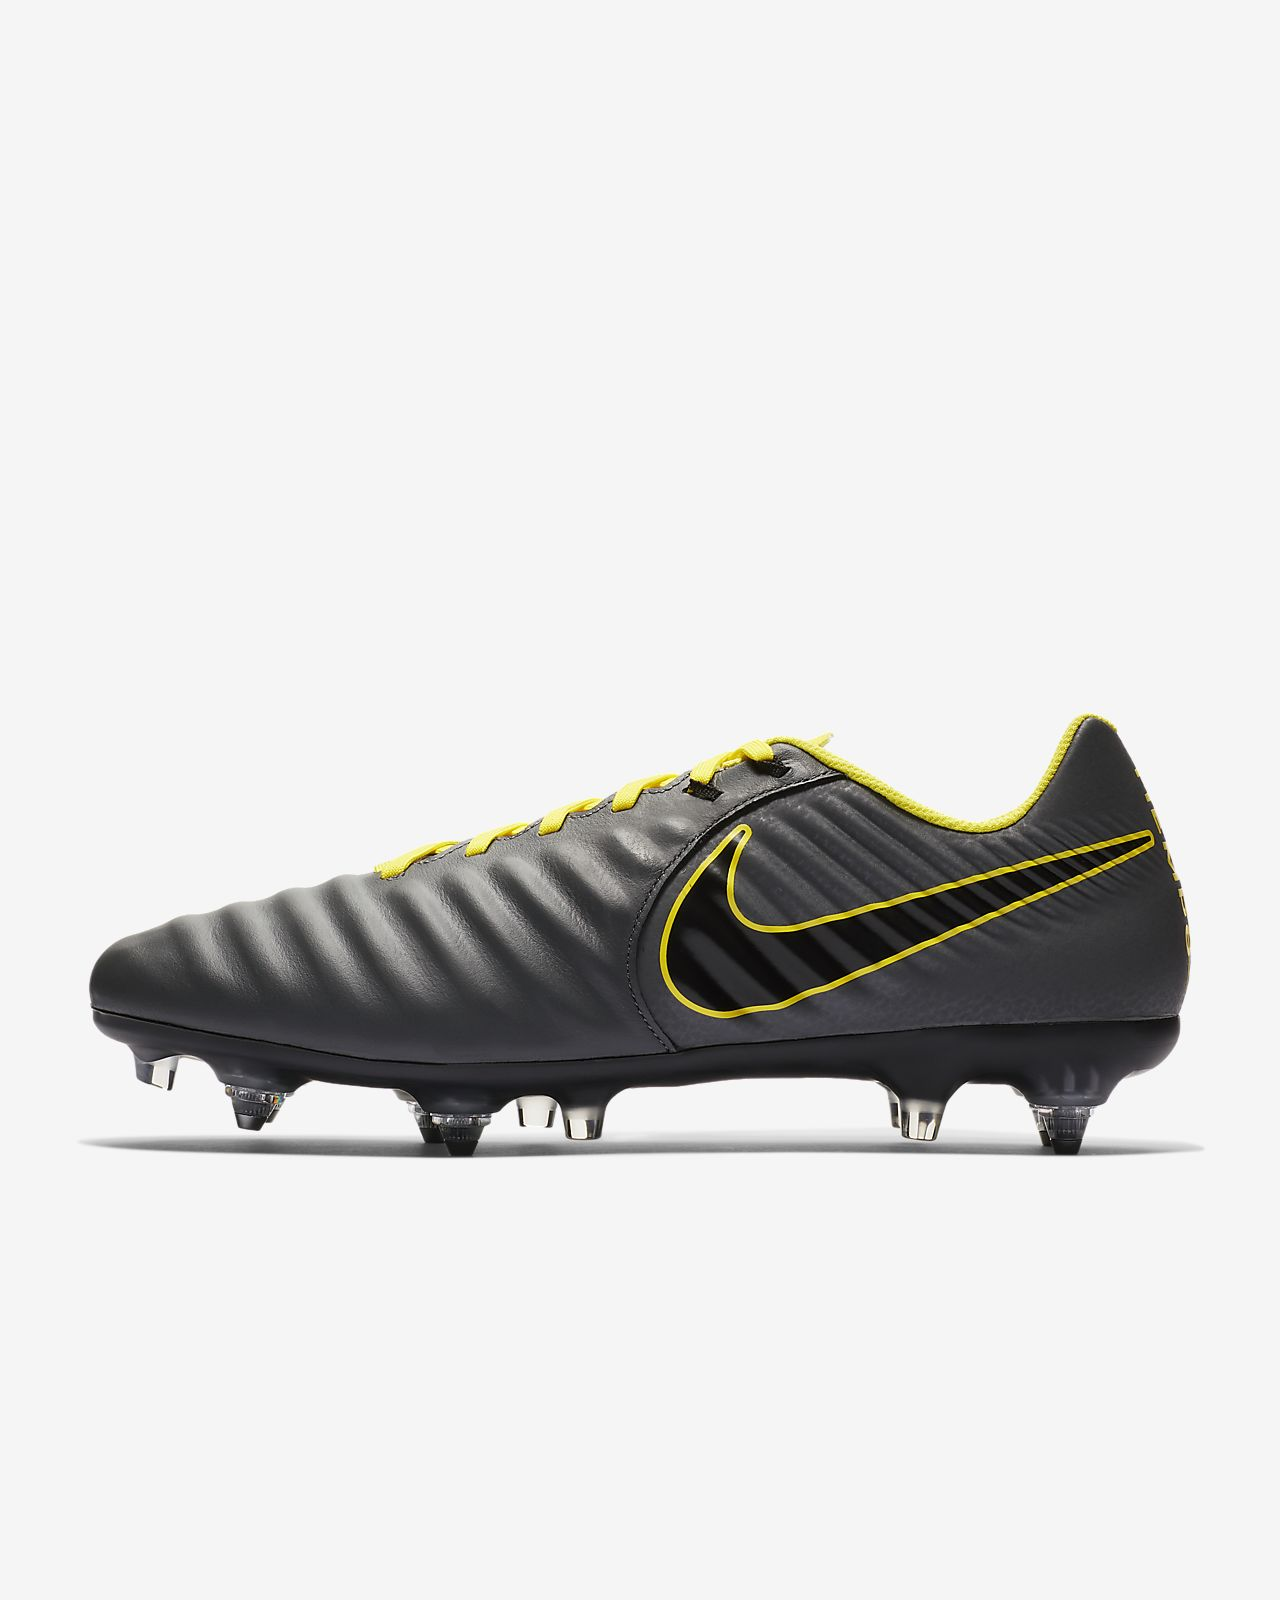 b2350310f8ca2 Nike Legend 7 Academy SG-Pro Anti-Clog Traction Soft-Ground Pro ...